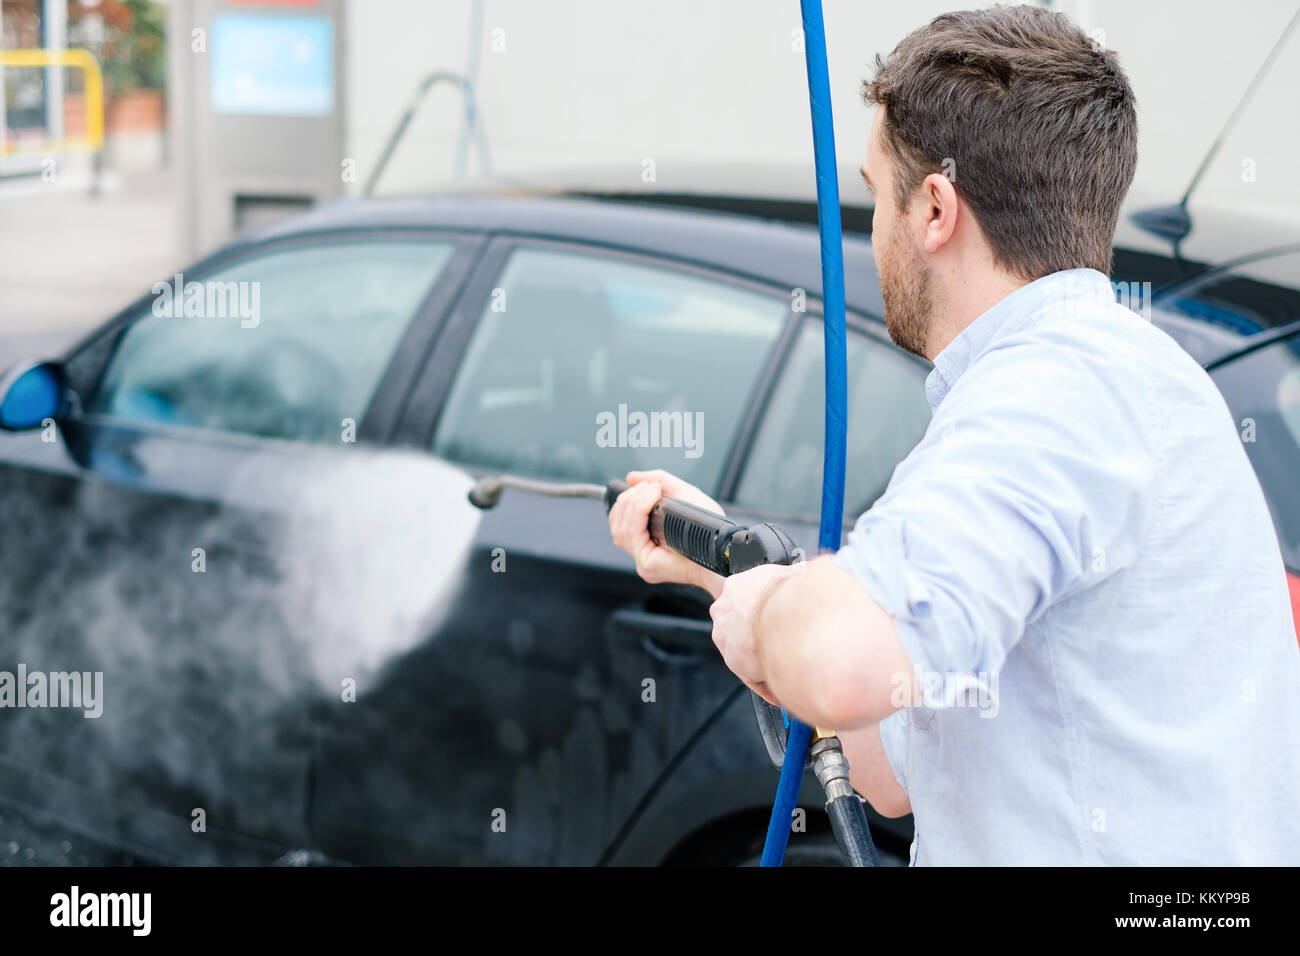 Man working car wash in stock photos man working car wash in stock man washing his car in a self service car wash station stock image solutioingenieria Images